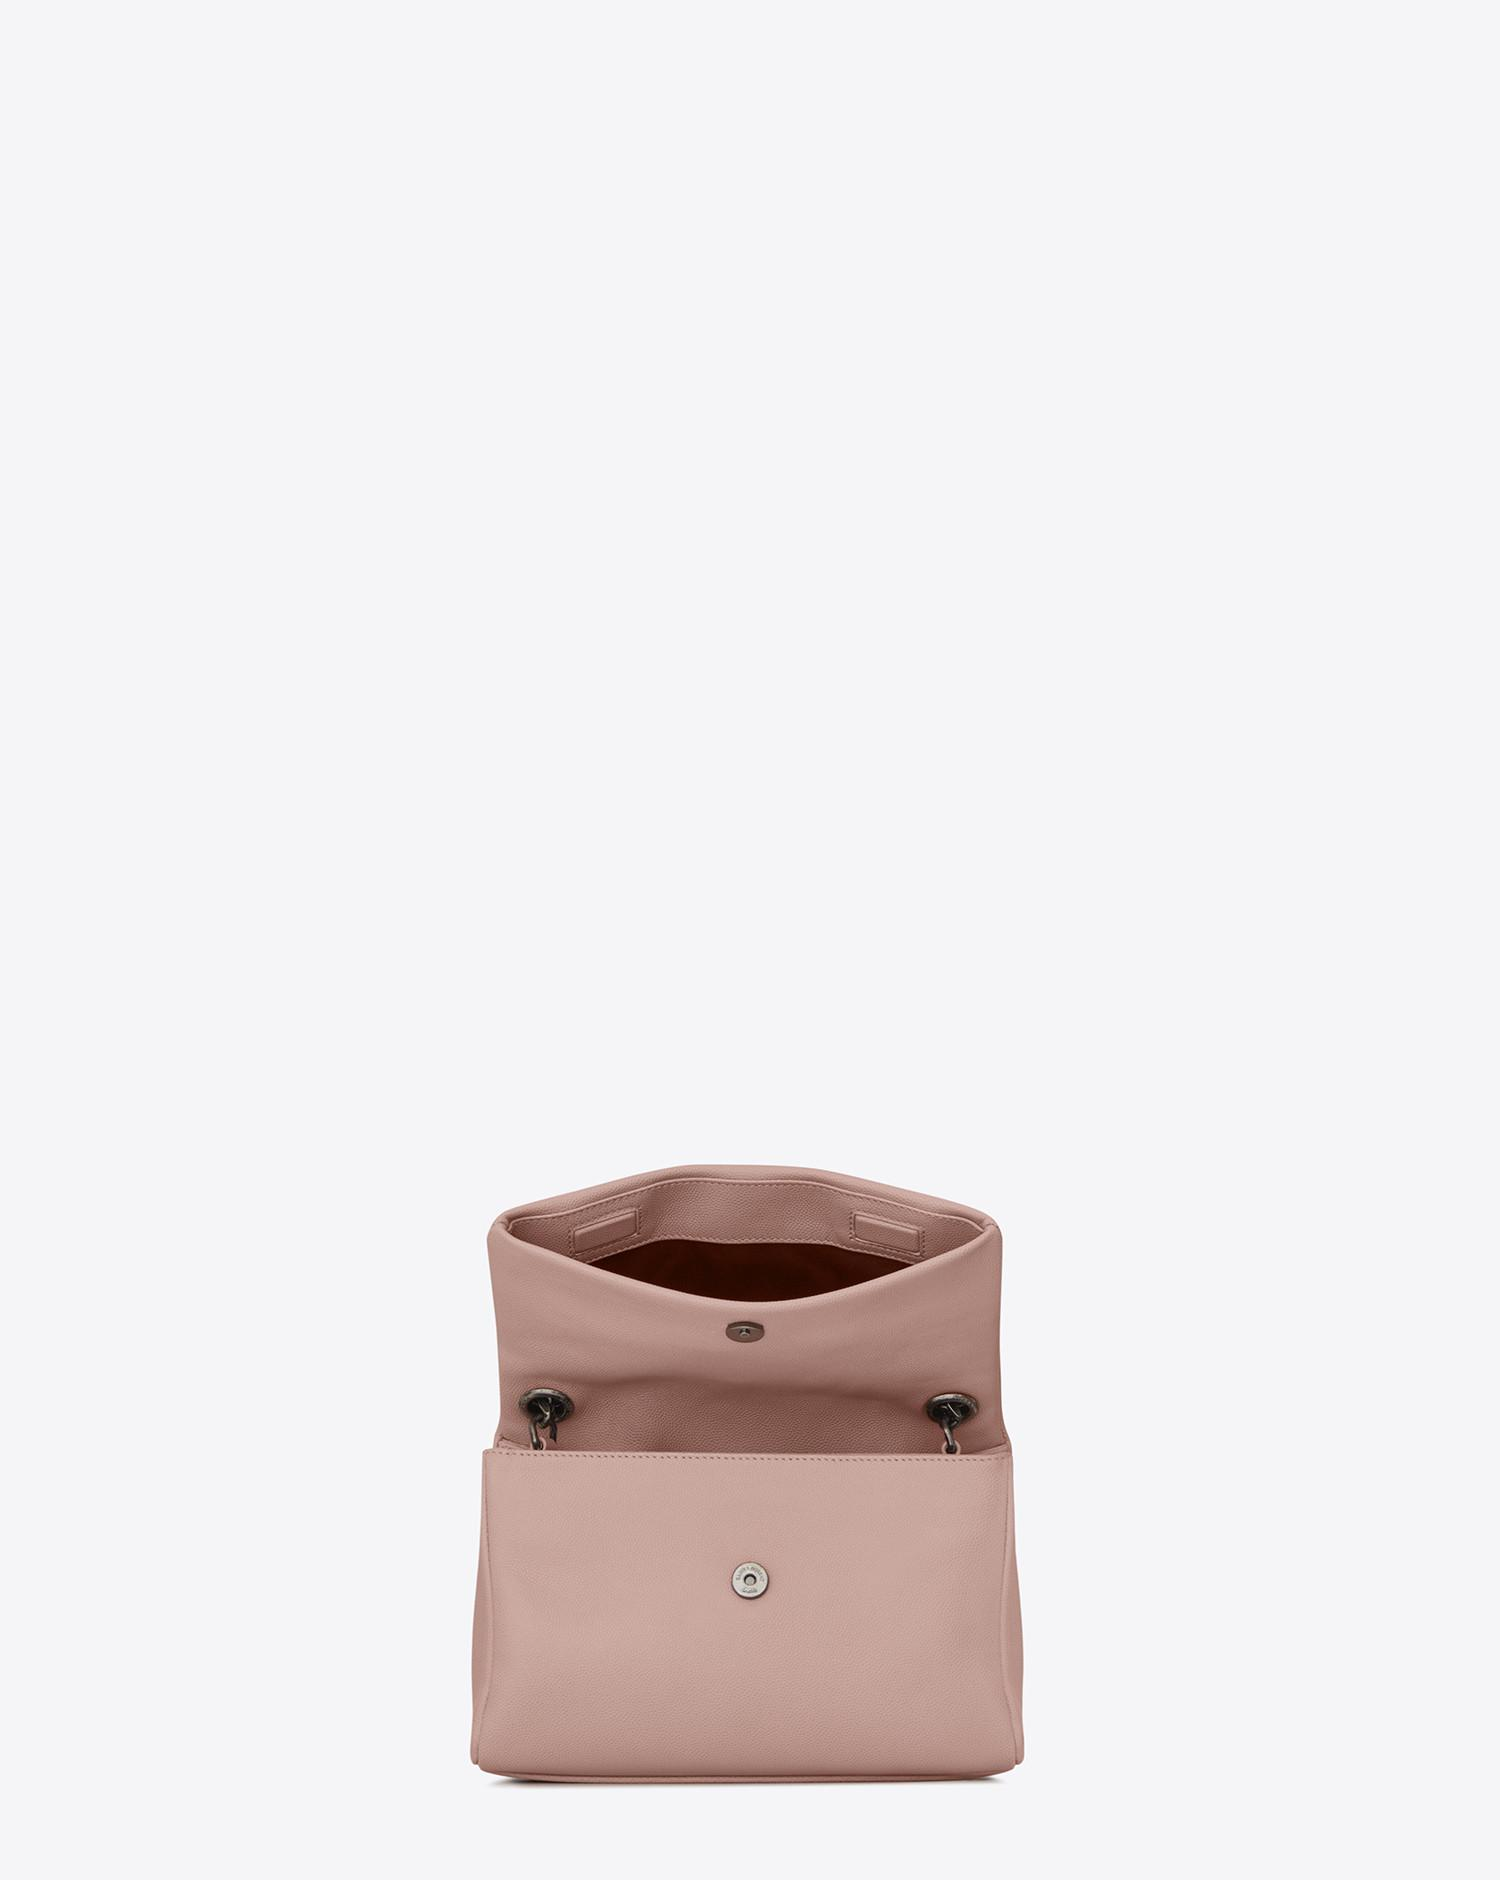 Lyst - Saint Laurent Small West Hollywood Bag In Pale Blush Textured ... e3a3fffeaf4d6